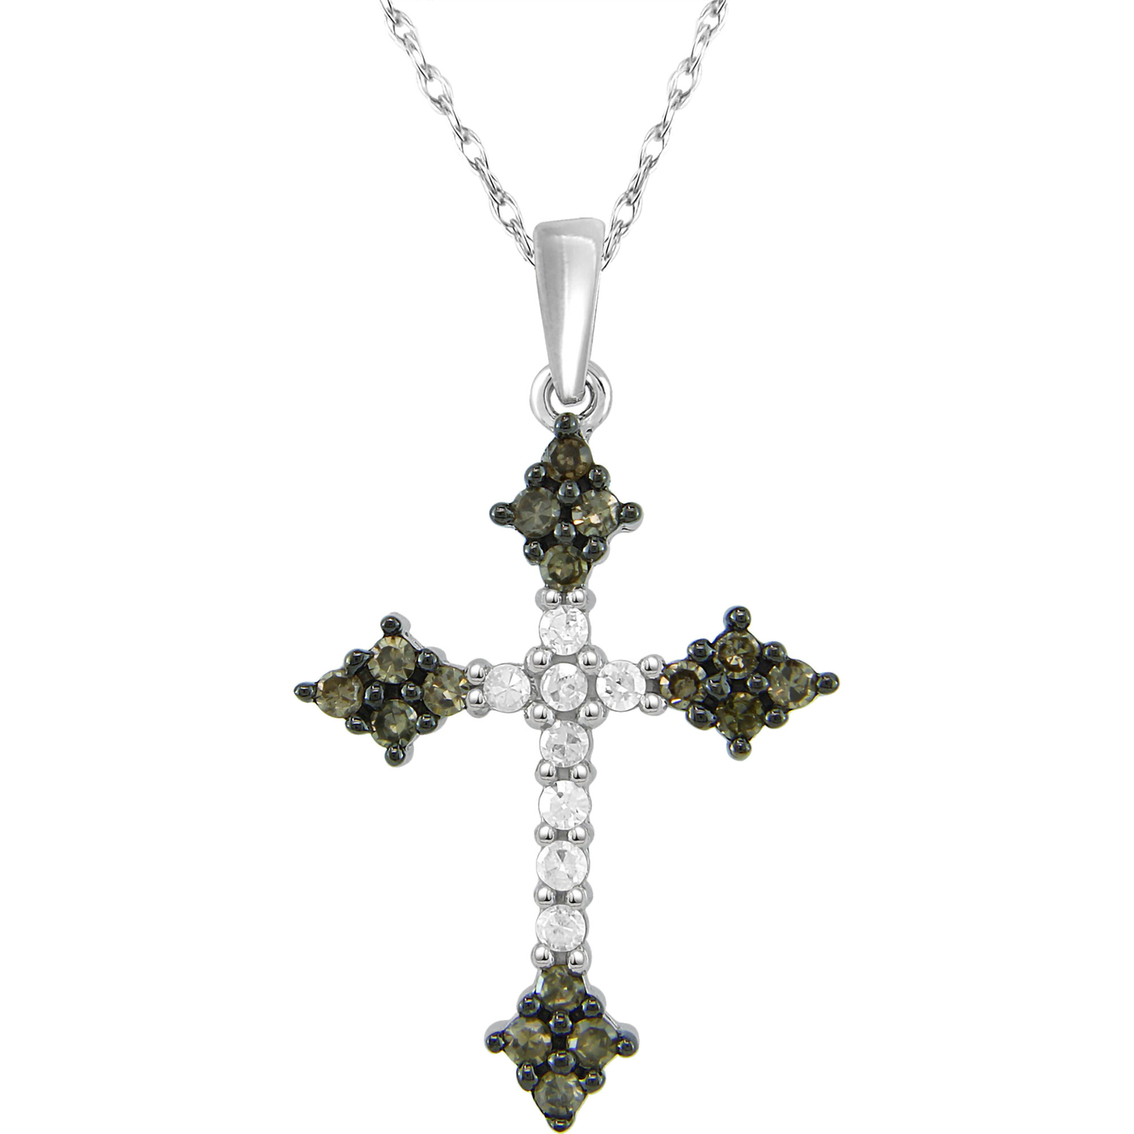 10k White Gold 1 4 Ctw Champagne Diamond Cross Pendant